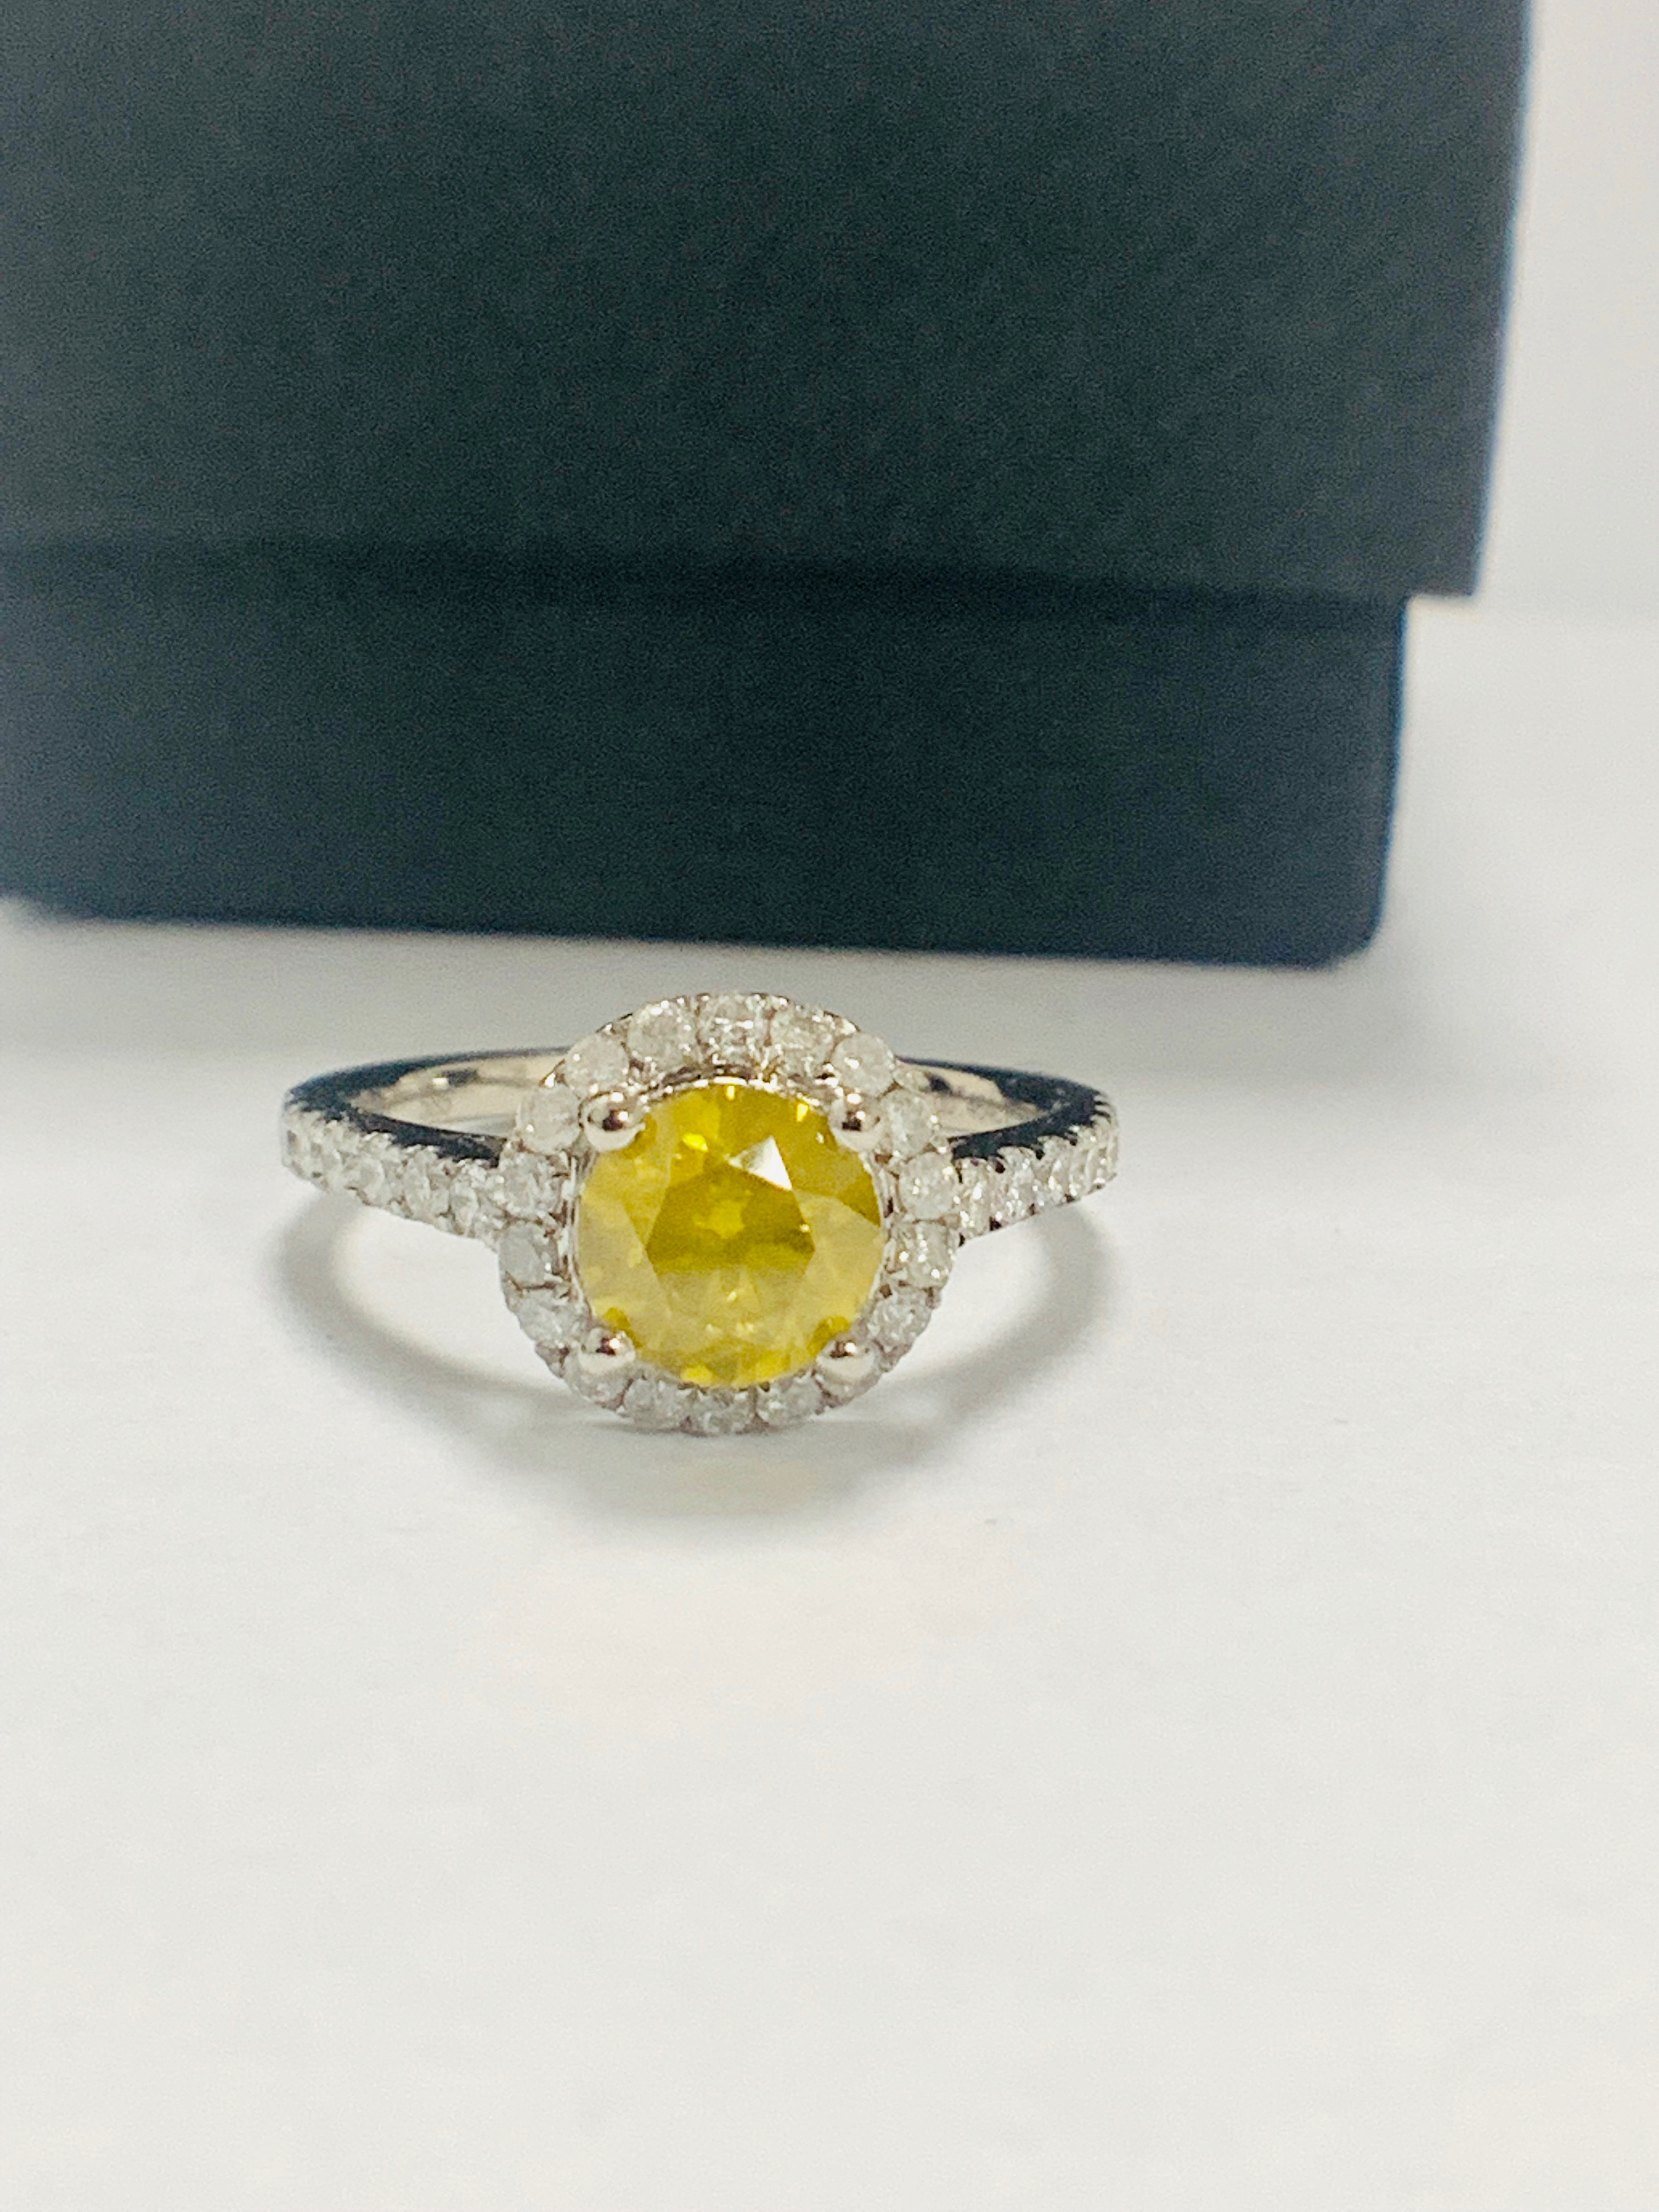 Lot 63 - 14ct White Gold Diamond ring featuring centre, round brilliant cut, yellow Diamond (1.08ct)